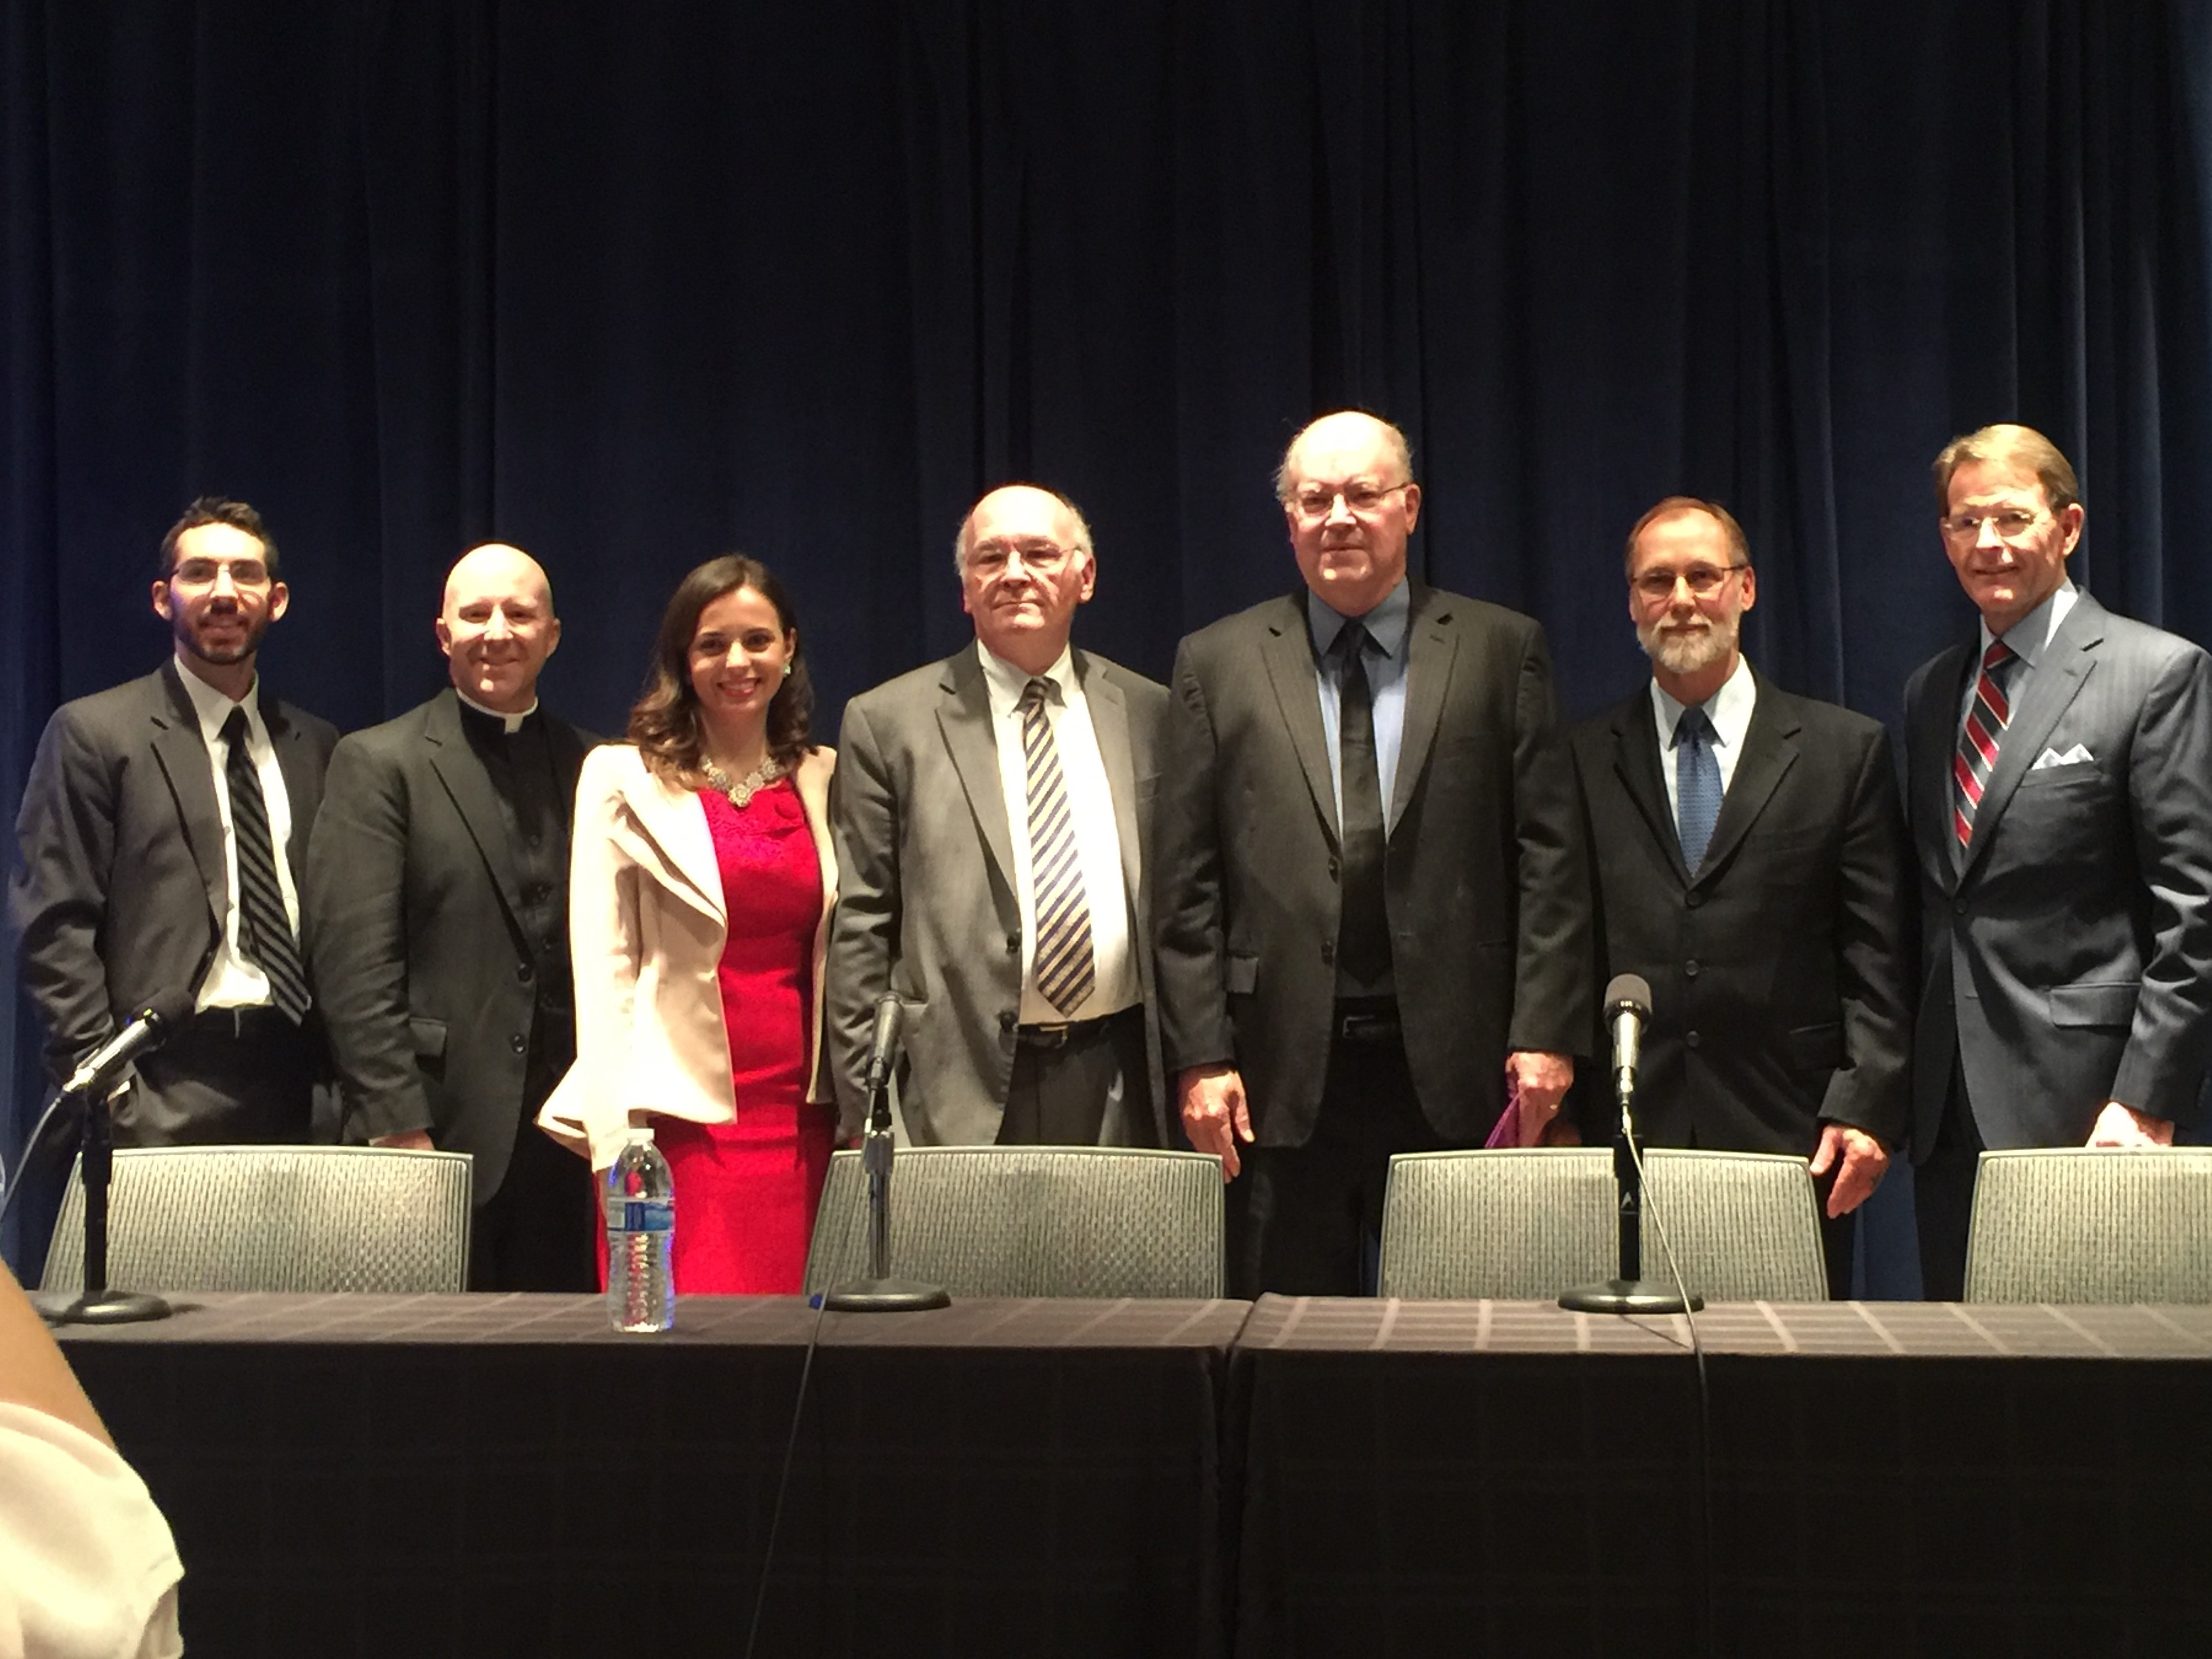 Chuck Donovan with other presenters at Family Research Council on January 25, 2017